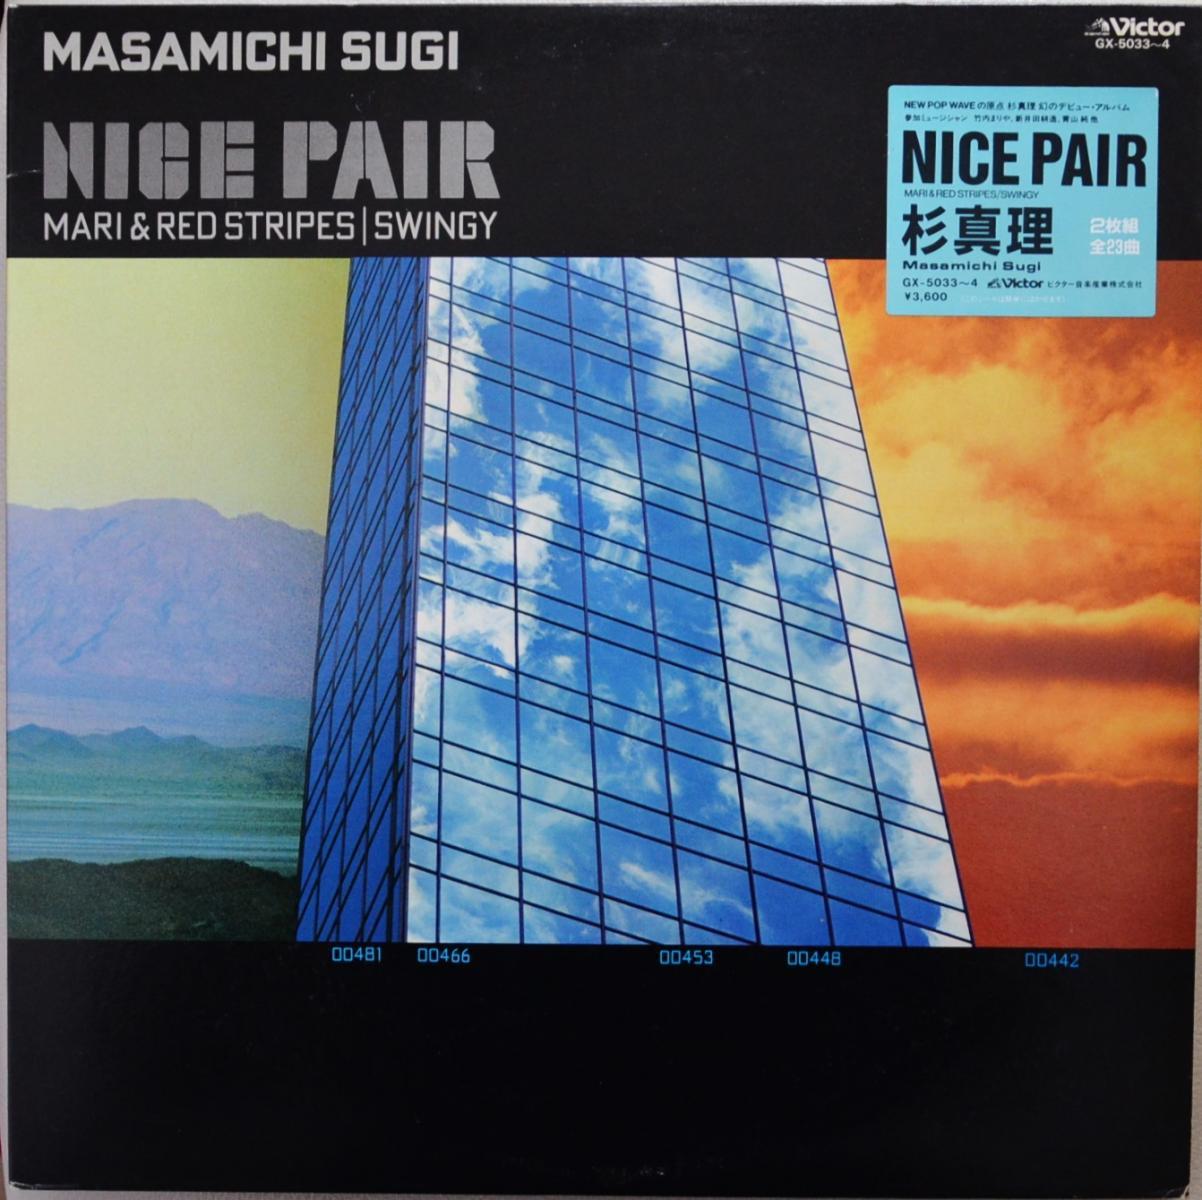 杉真理 MASAMICHI SUGI / NICE PAIR (MARI & RED STRIPES / SWINGY) (2LP)